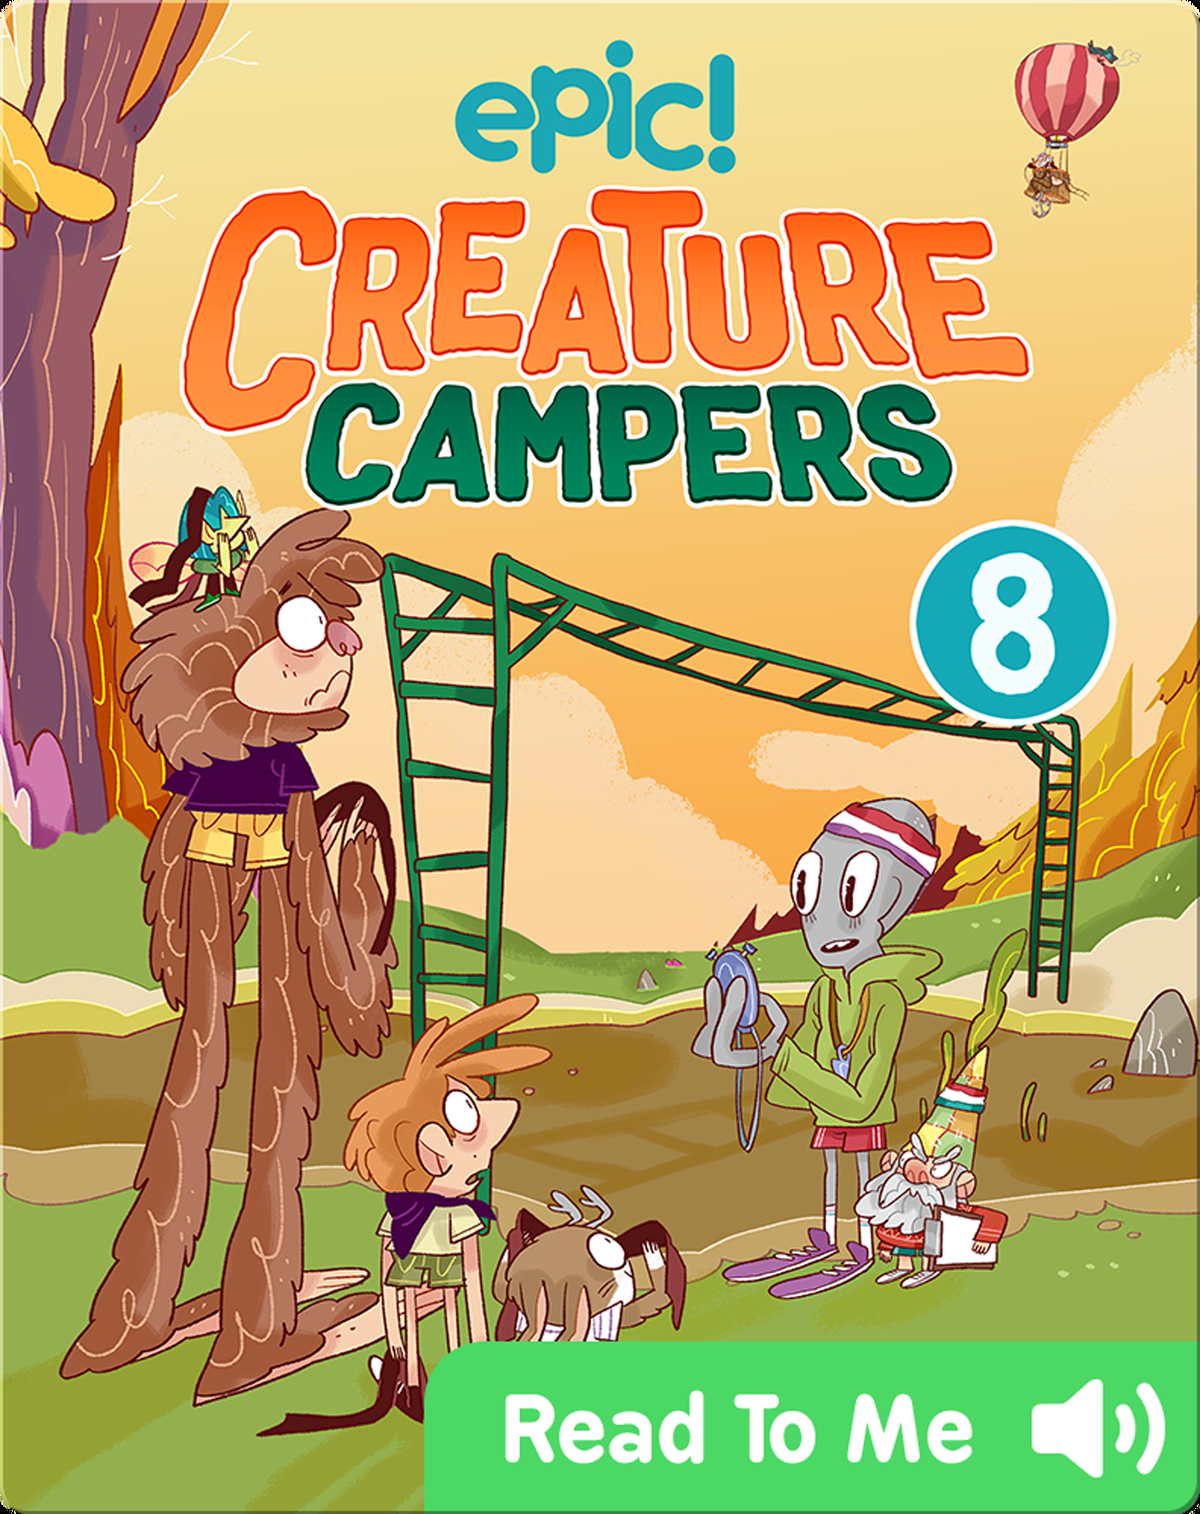 Creature Campers Book 8 The Wall Of Doom Children S Book By Joe Mcgee With Illustrations By Bea Tormo Discover Children S Books Audiobooks Videos More On Epic